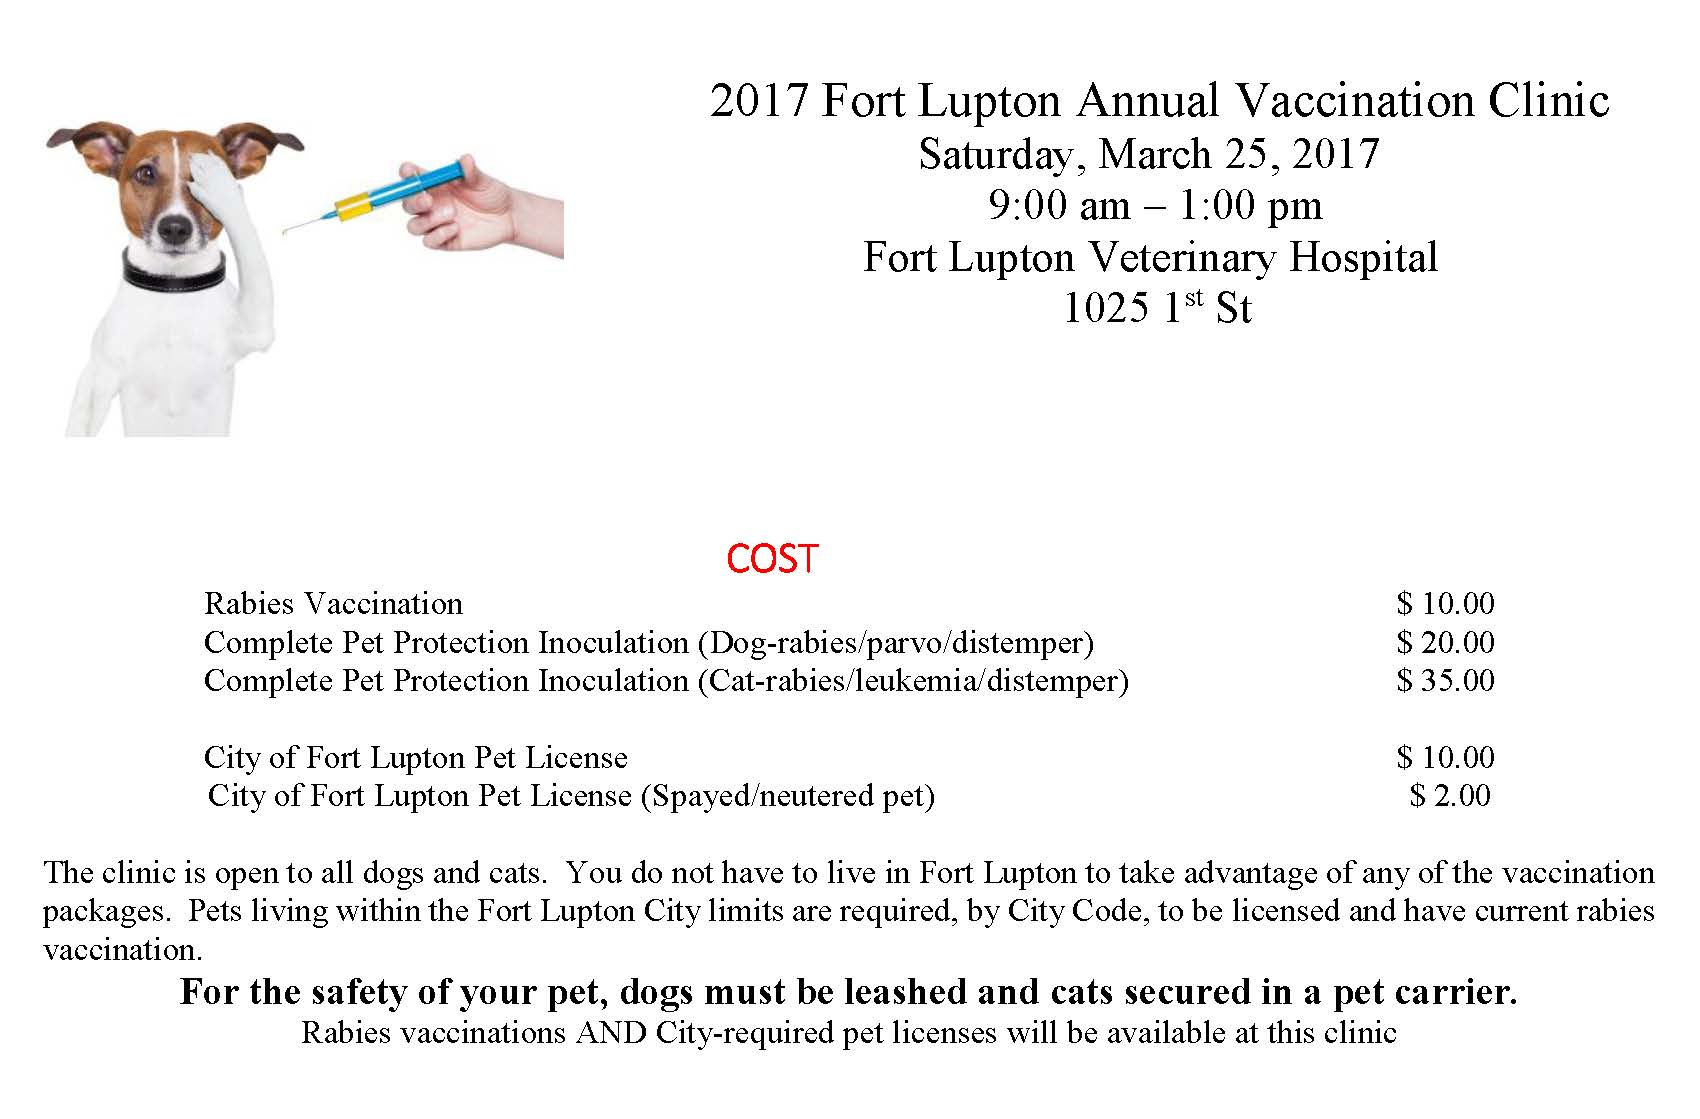 2017 Fort Lupton Annual Vaccination Clinic new one